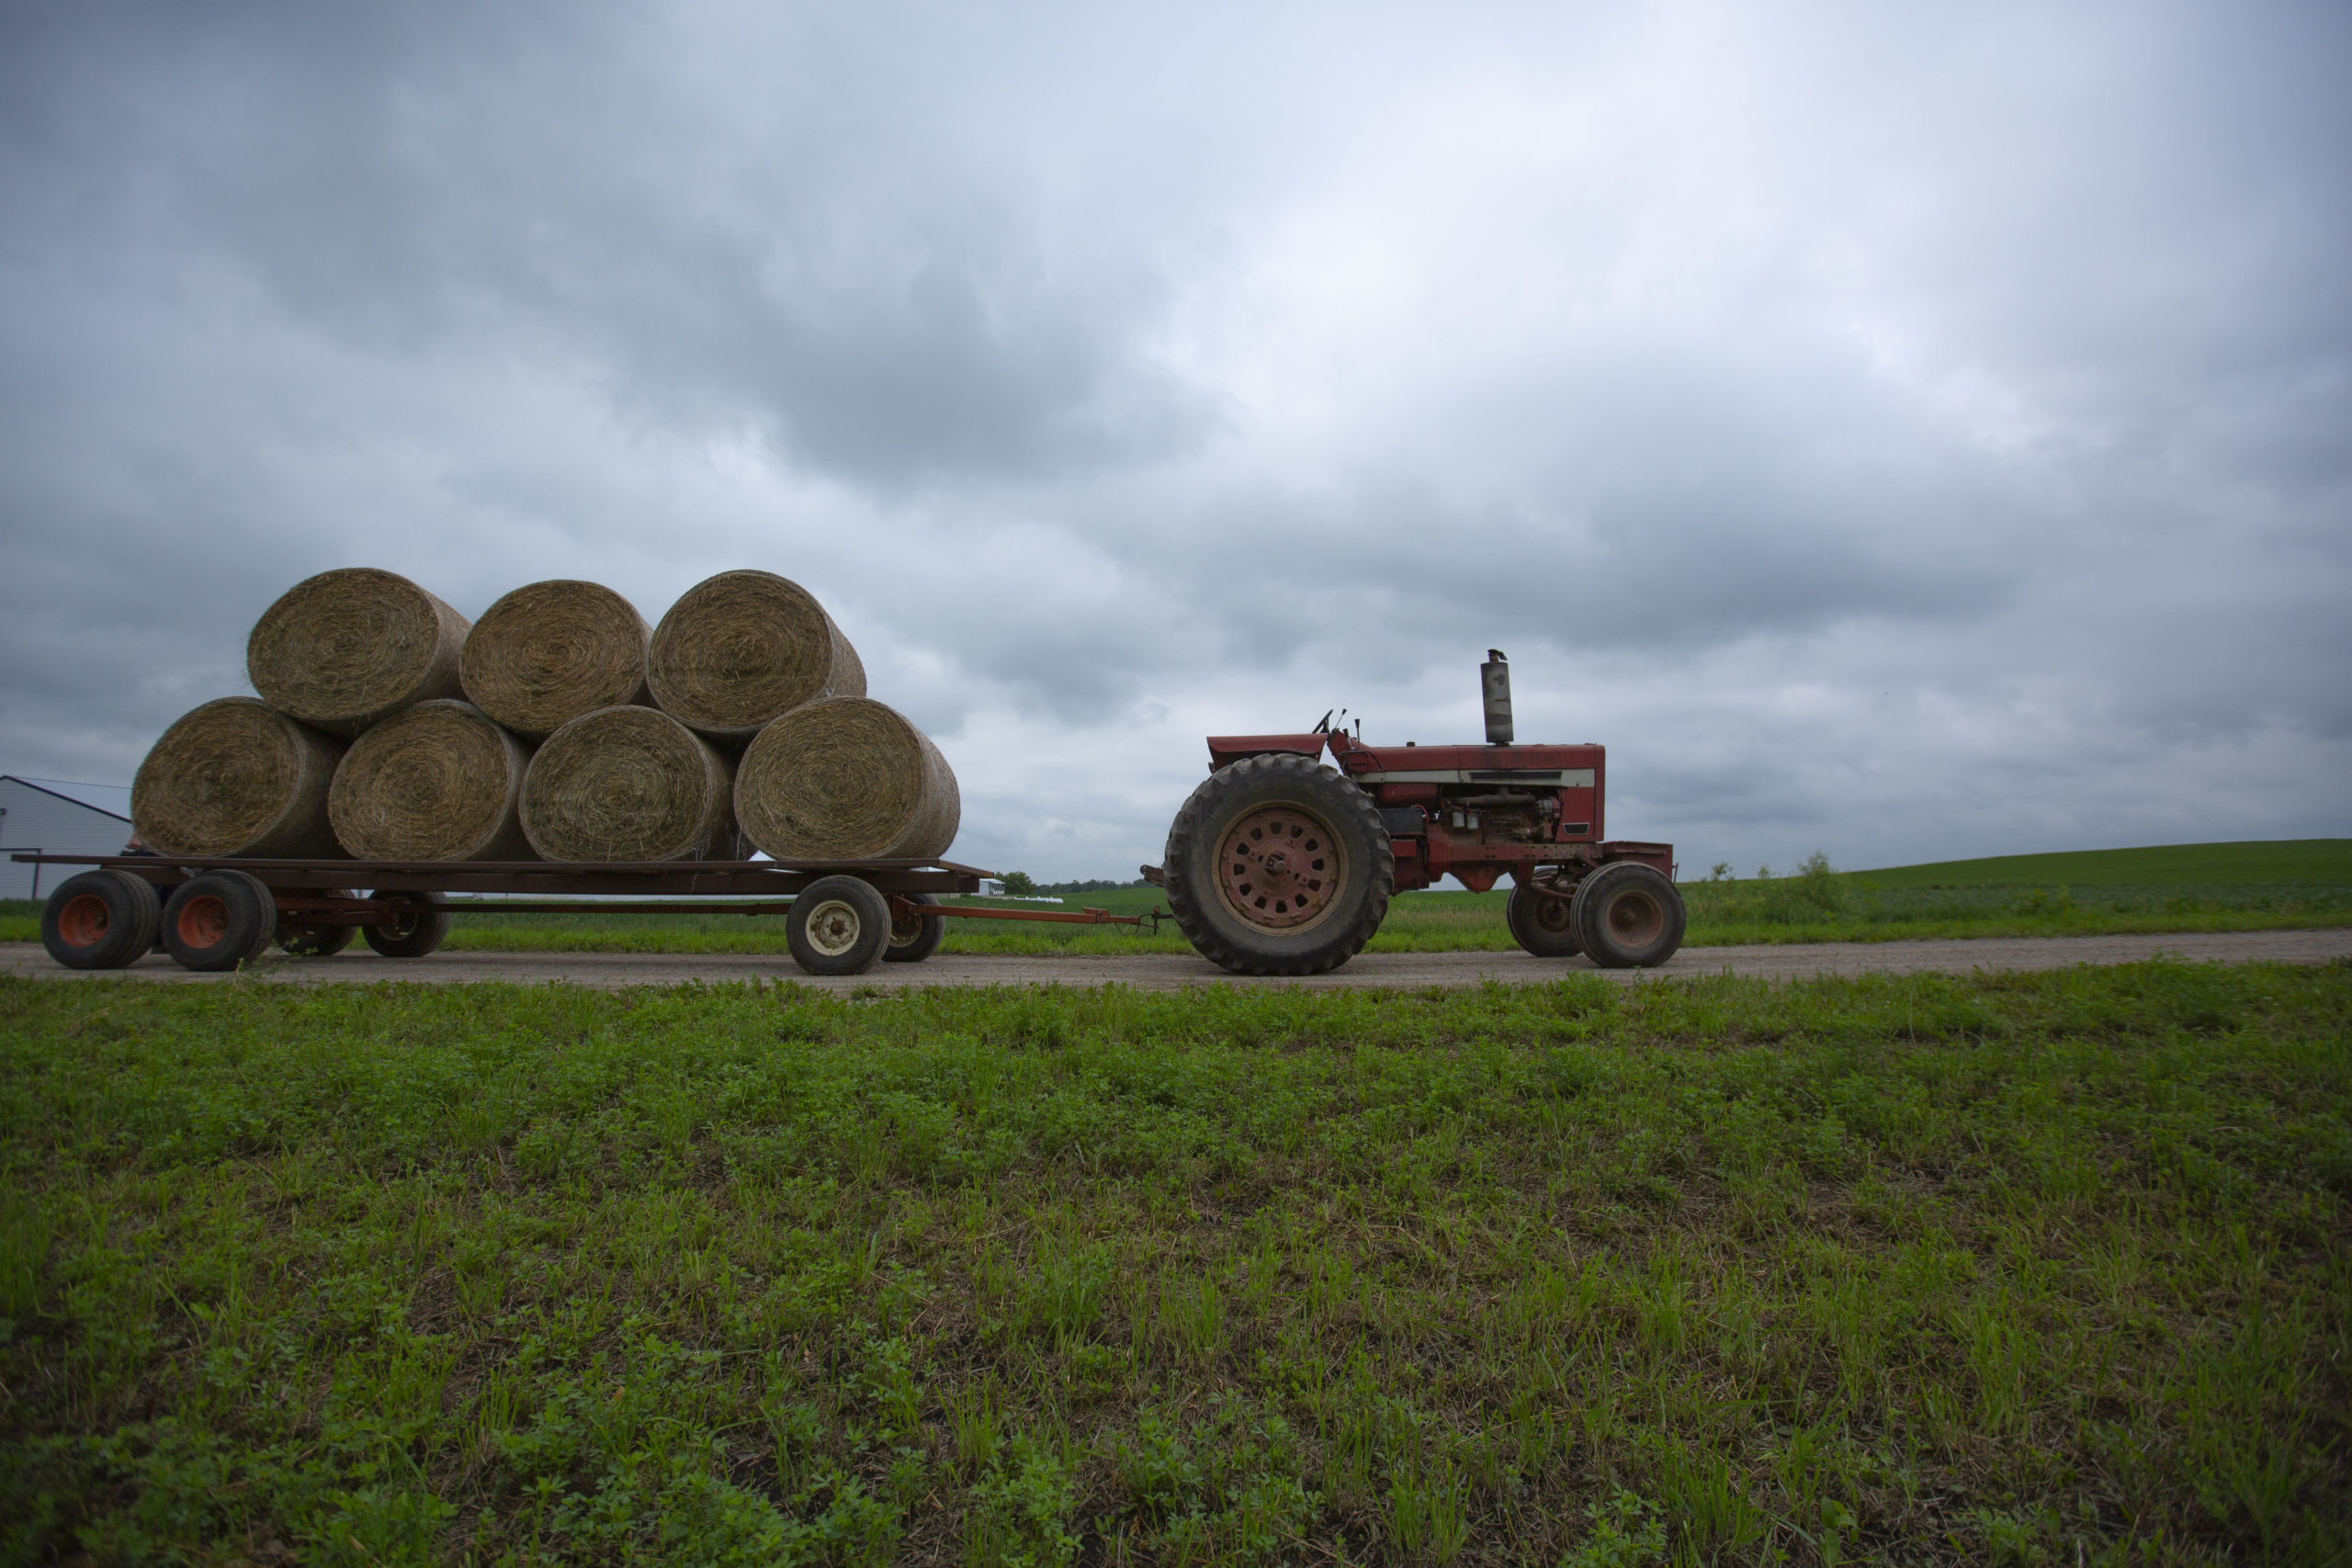 Tractor pulling trailer with giant bales of hay on it.